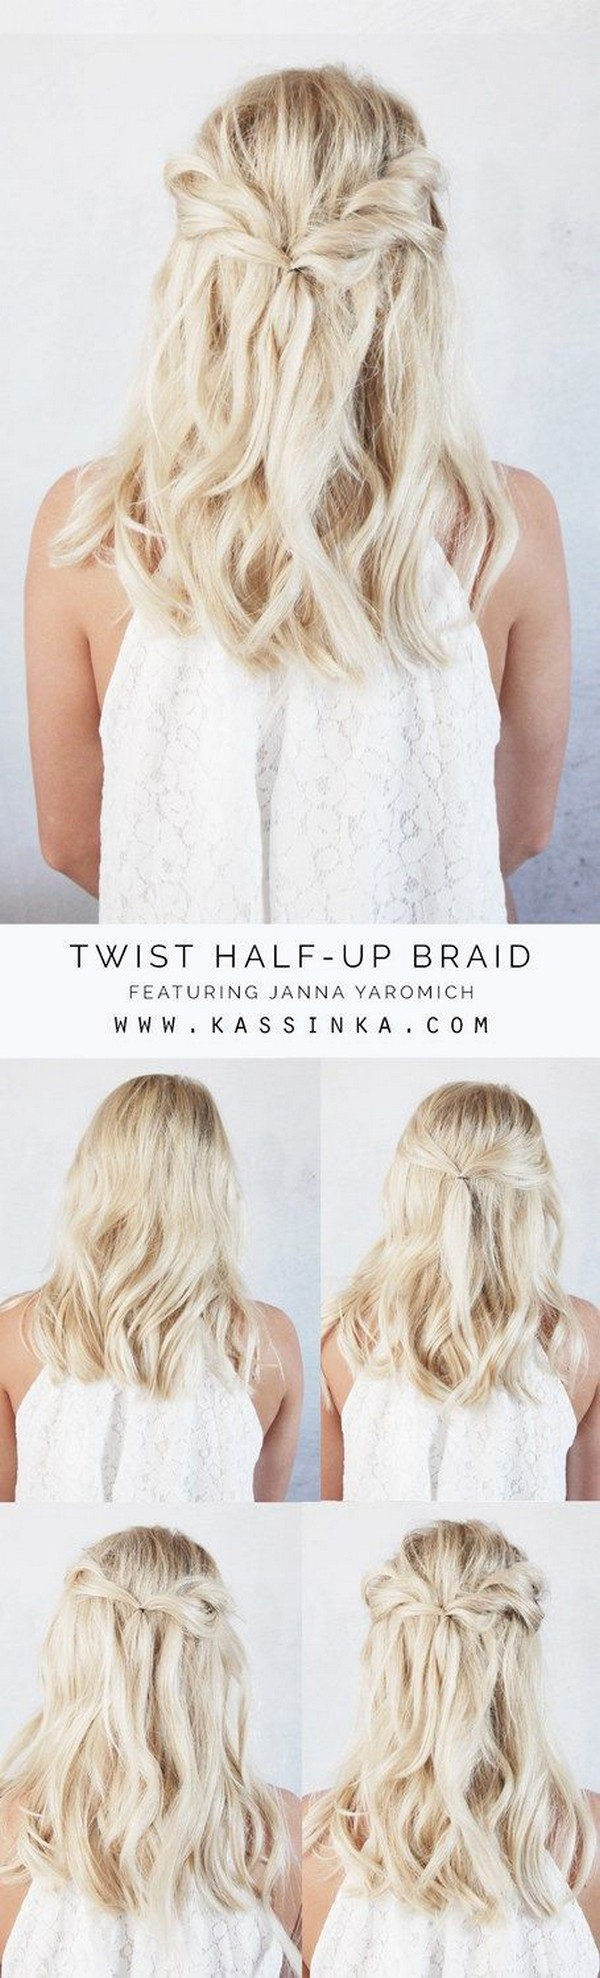 10 latest wedding hairstyles for medium length hair - page 2 of 2